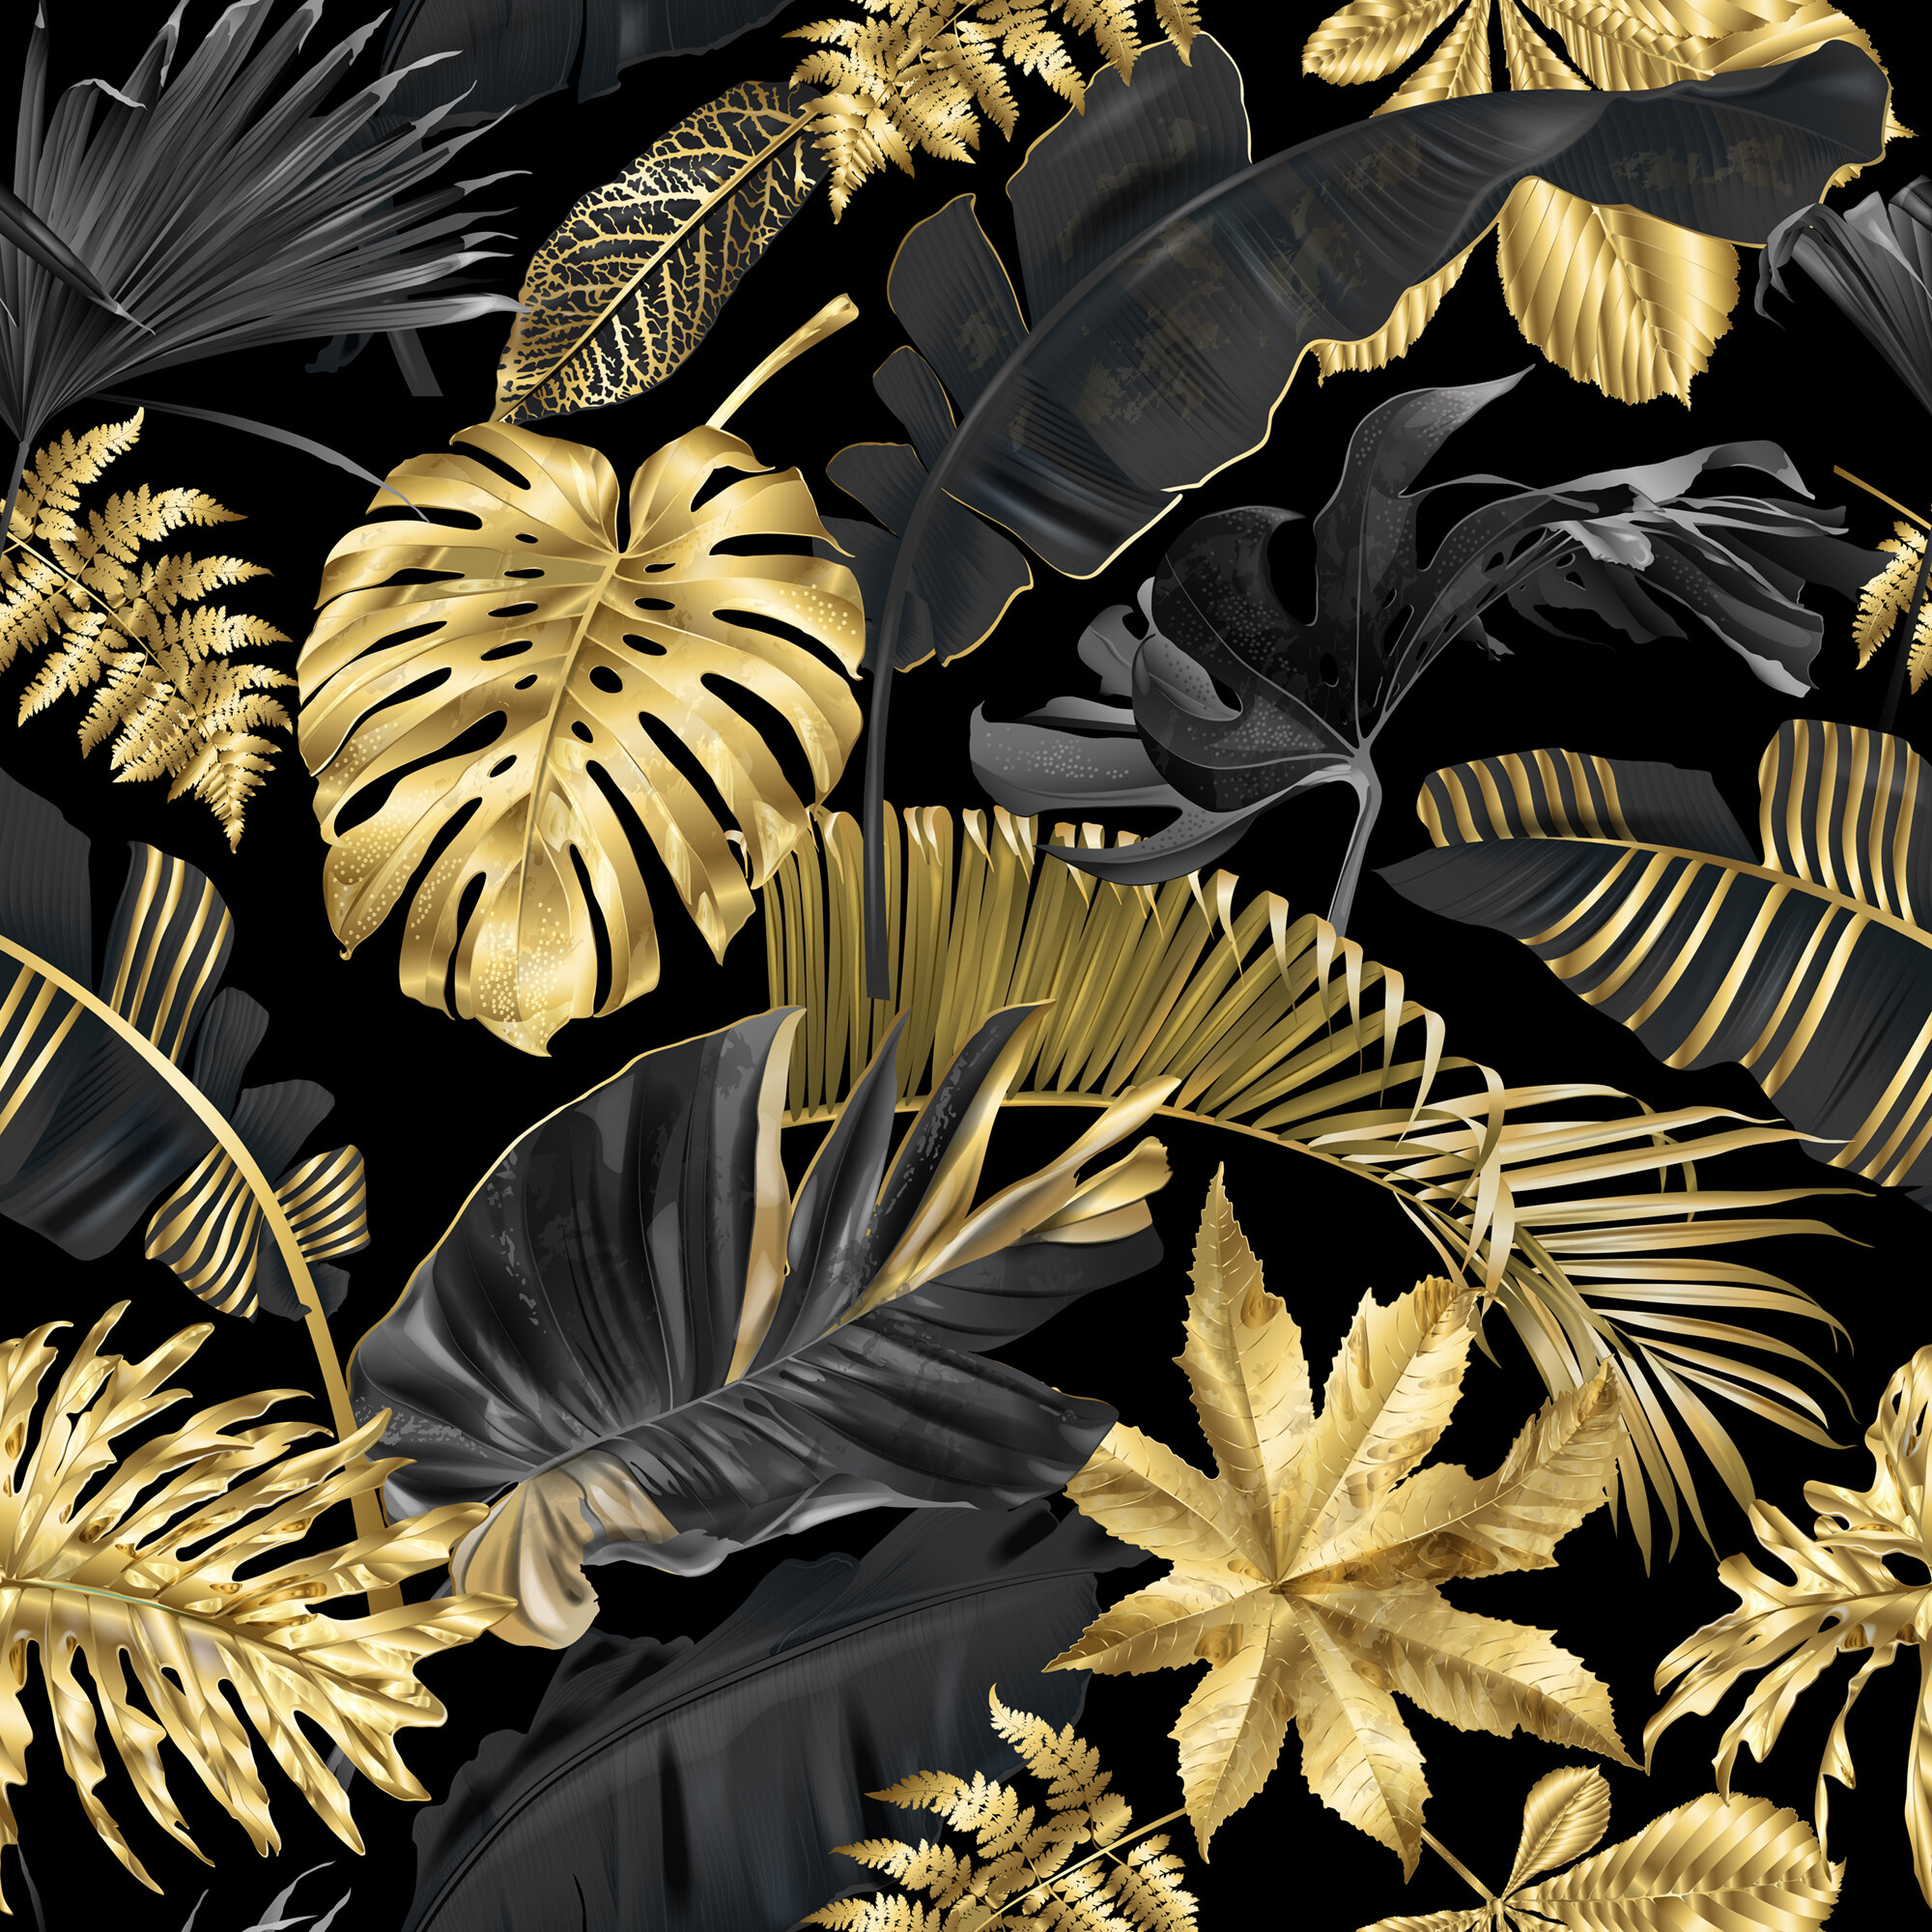 Bay Isle Home Jacky And Tropical Leaves 10 L X 24 W Peel And Stick Wallpaper Roll Reviews Wayfair Here you can explore hq tropical leaves transparent illustrations, icons and clipart with filter polish your personal project or design with these tropical leaves transparent png images, make it even. jacky and tropical leaves 10 l x 24 w peel and stick wallpaper roll